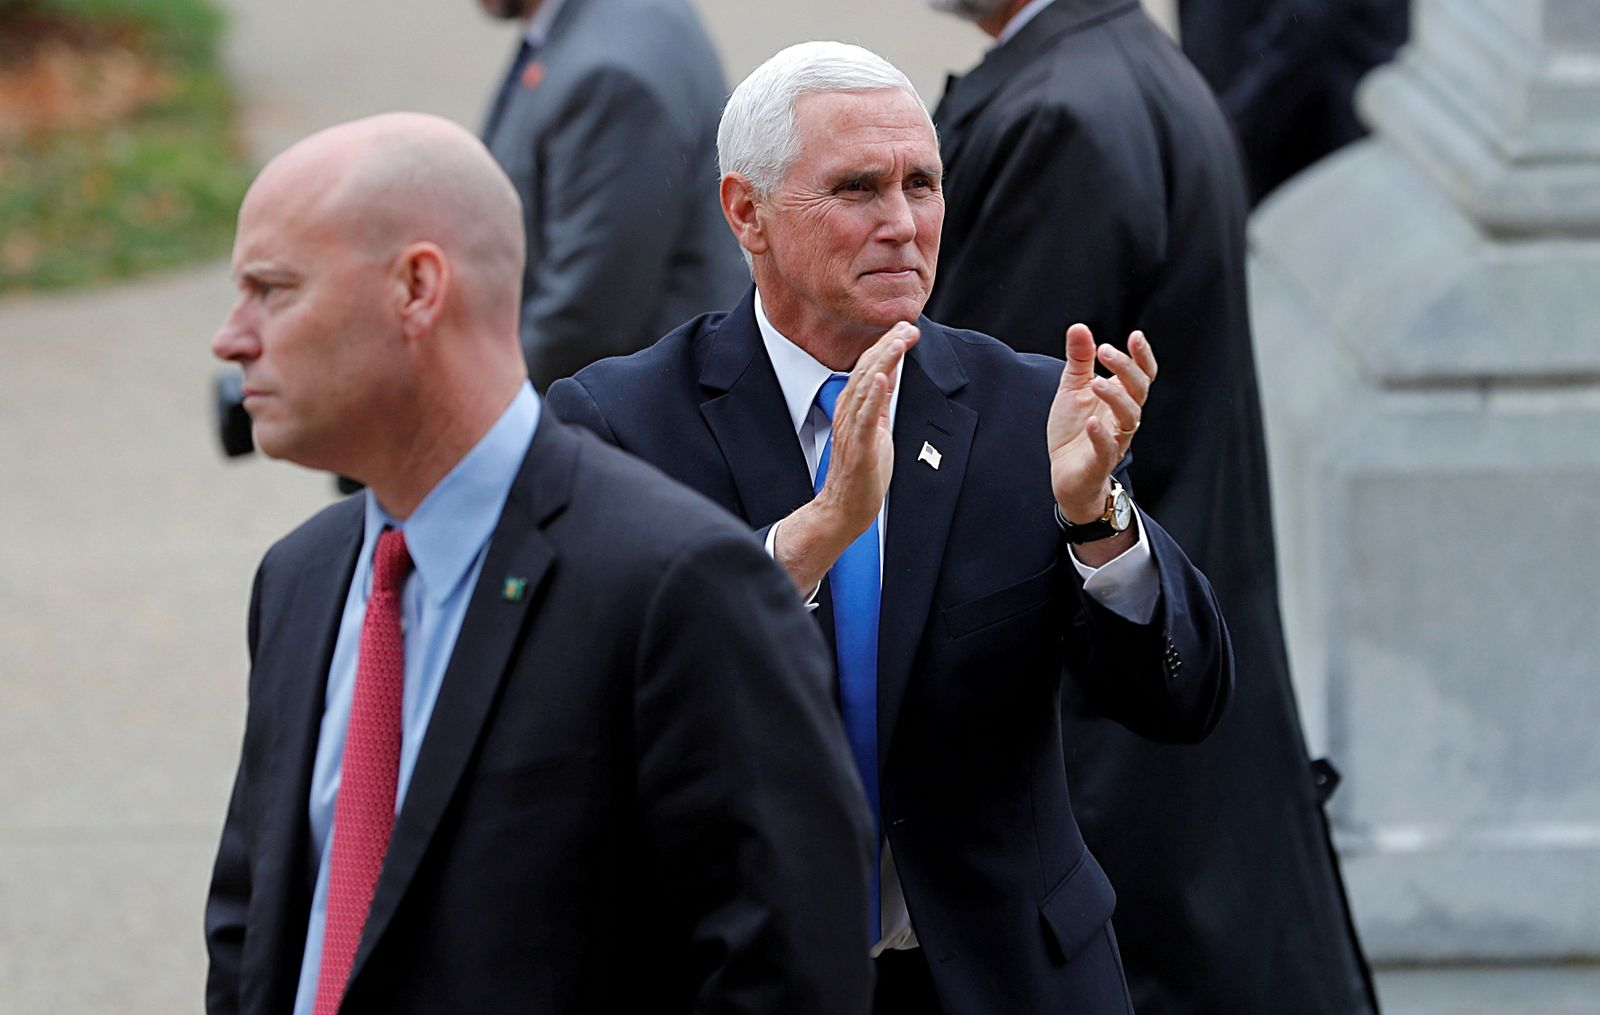 U.S. Vice President Pence reacts to supporters outside the New Hampshire State House as he walks near his Chief of Staff Marc Short in Concord